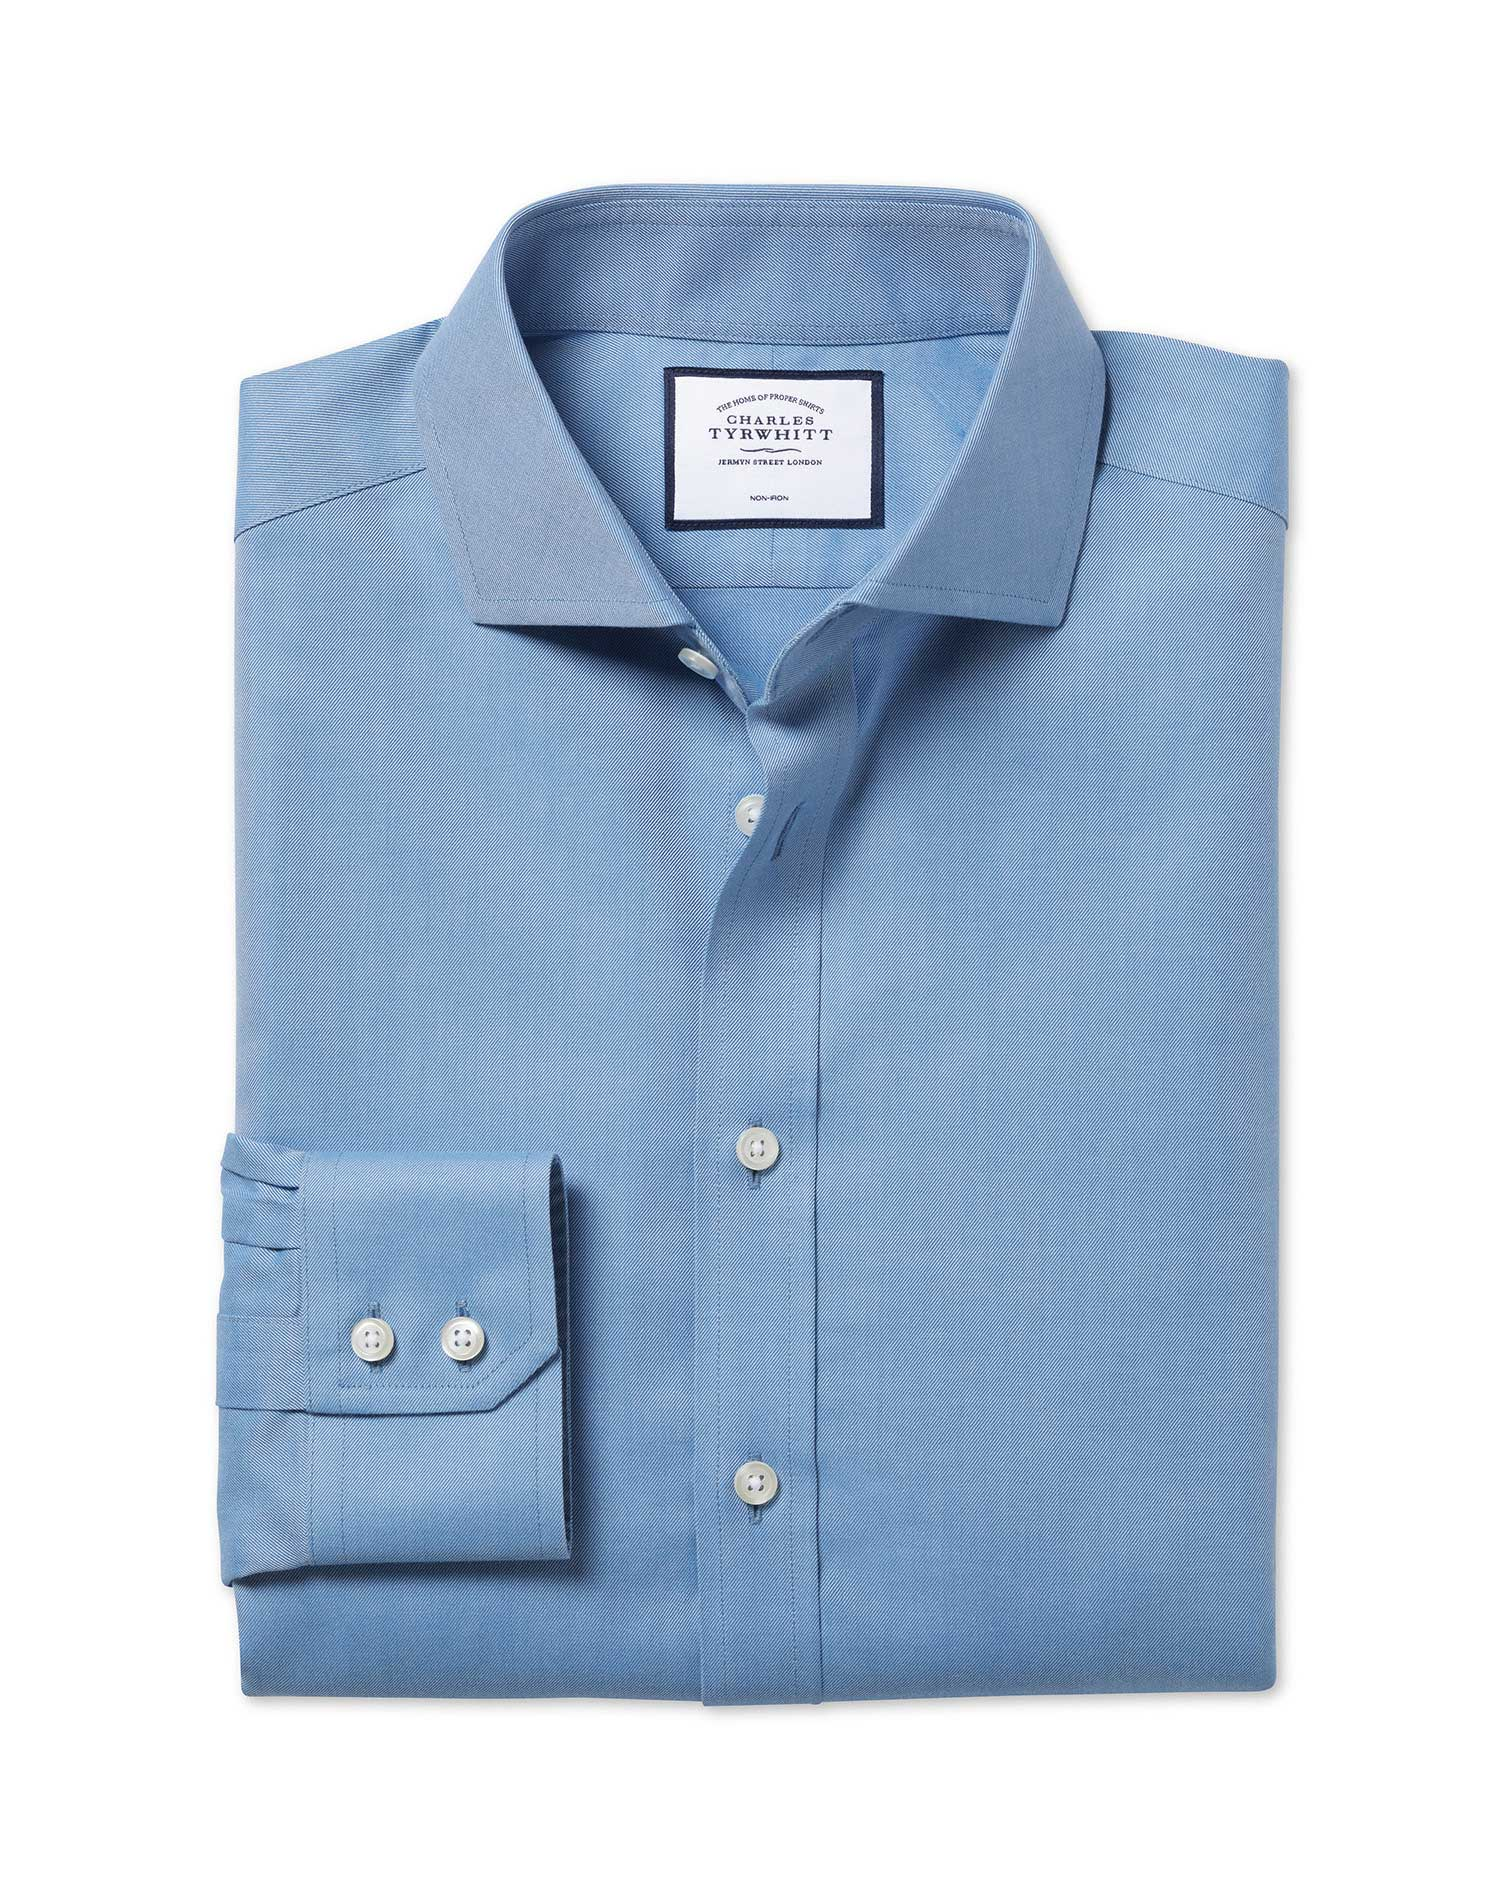 Slim Fit Non-Iron Cutaway Collar Twill Blue Cotton Formal Shirt Single Cuff Size 15.5/37 by Charles